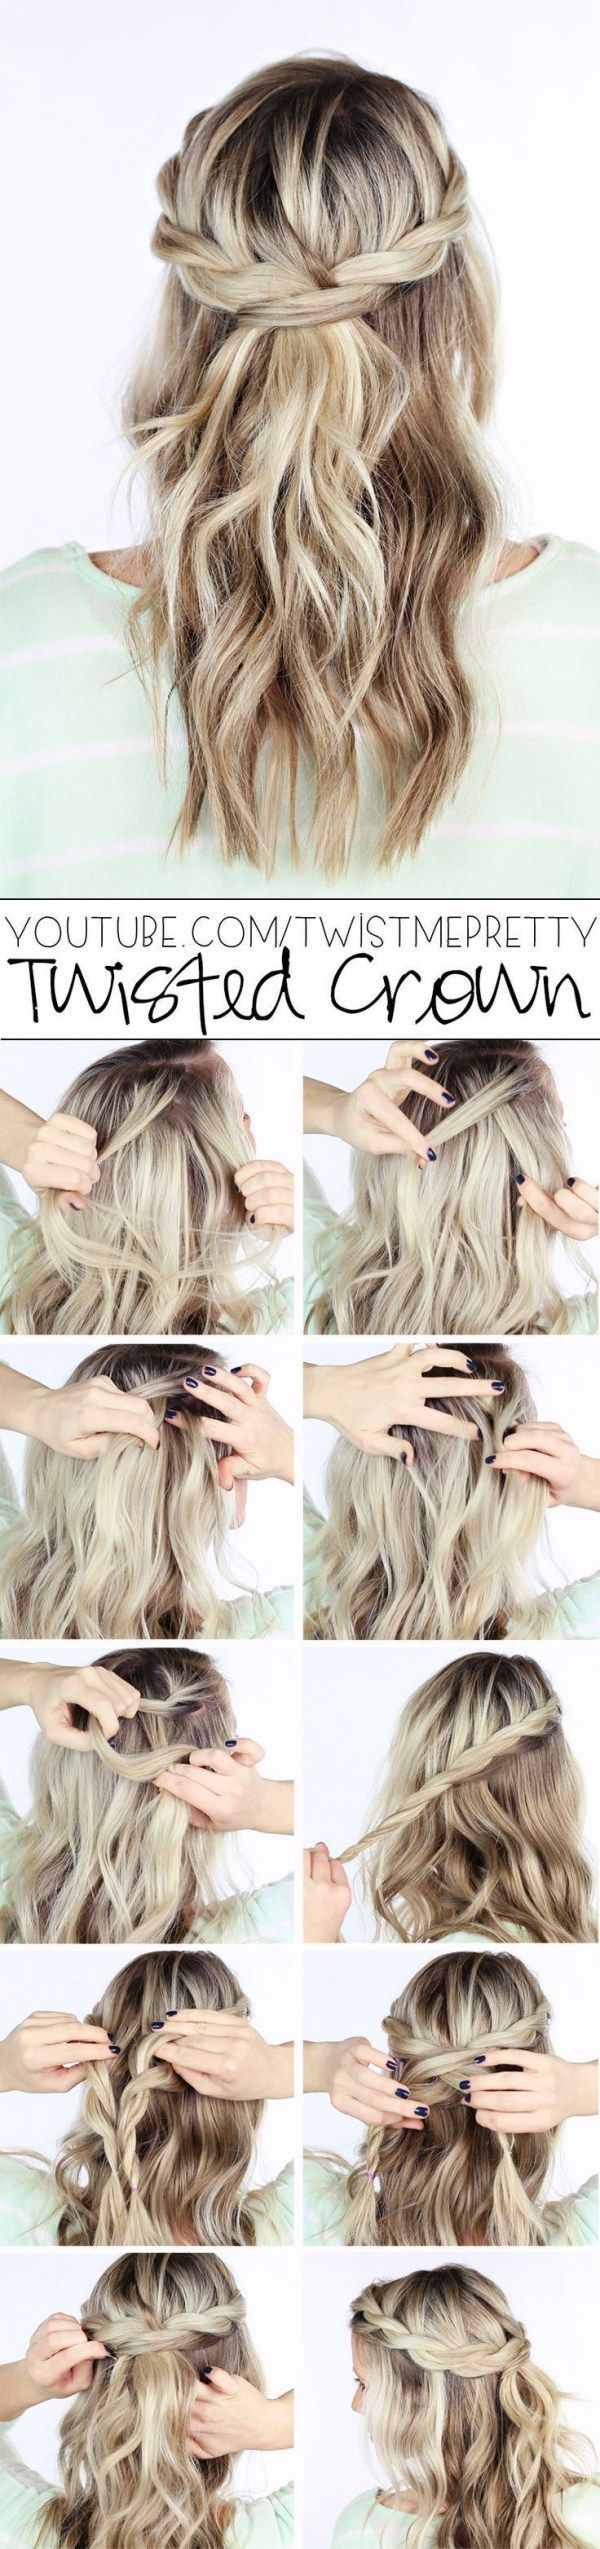 best 25+ easy down hairstyles ideas only on pinterest | down